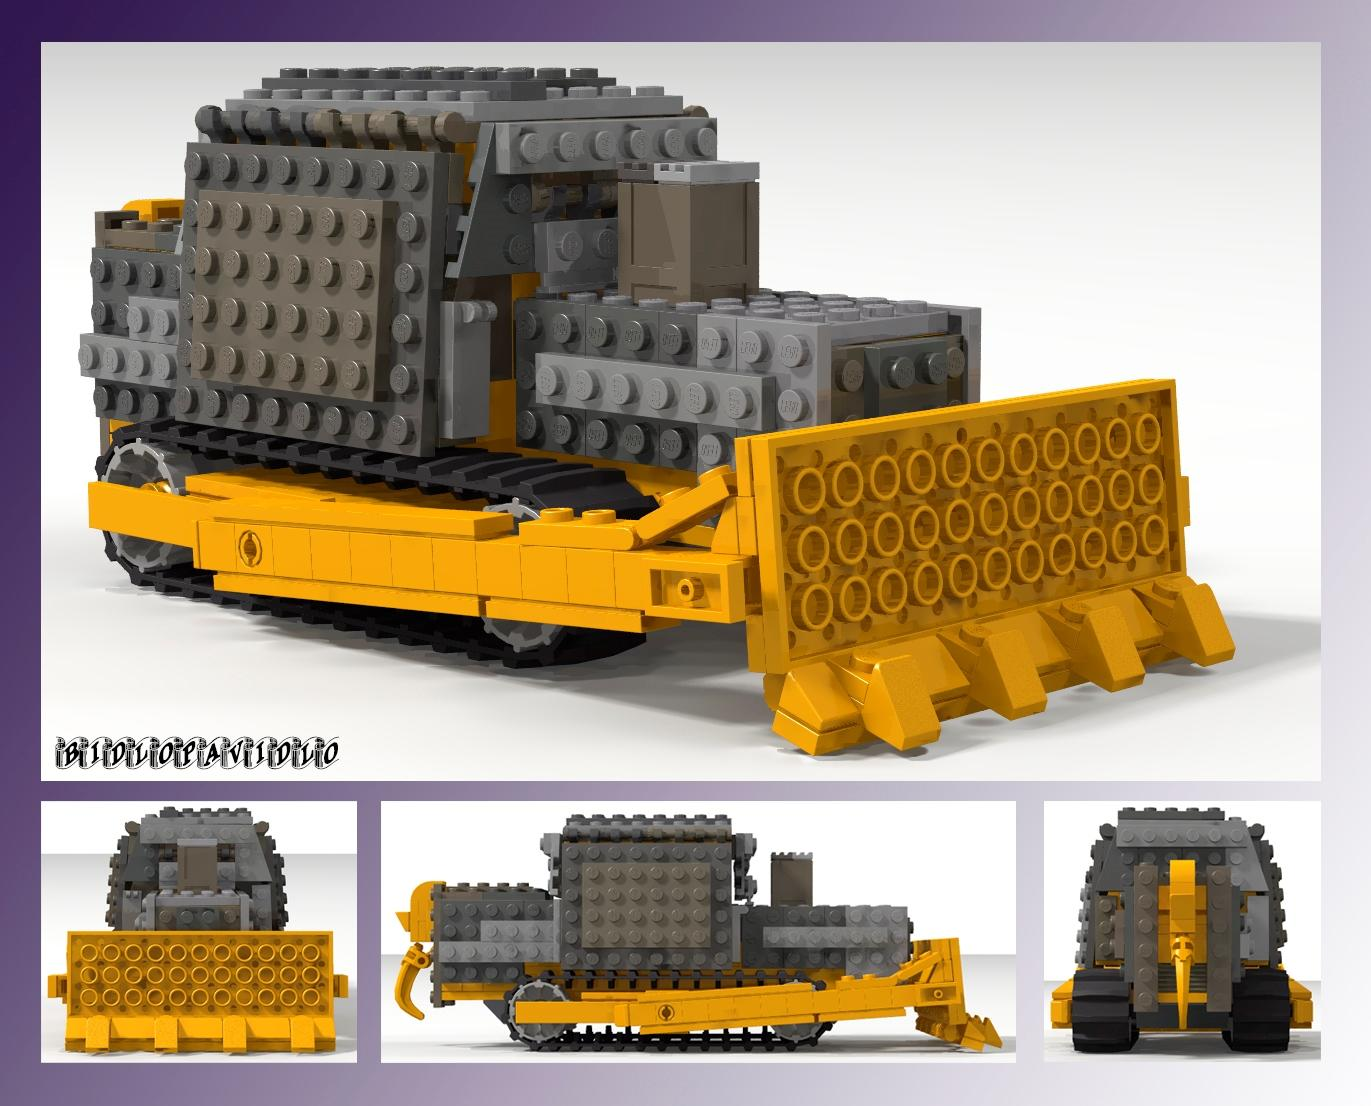 Lego Killdozer Killdozer Know Your Meme